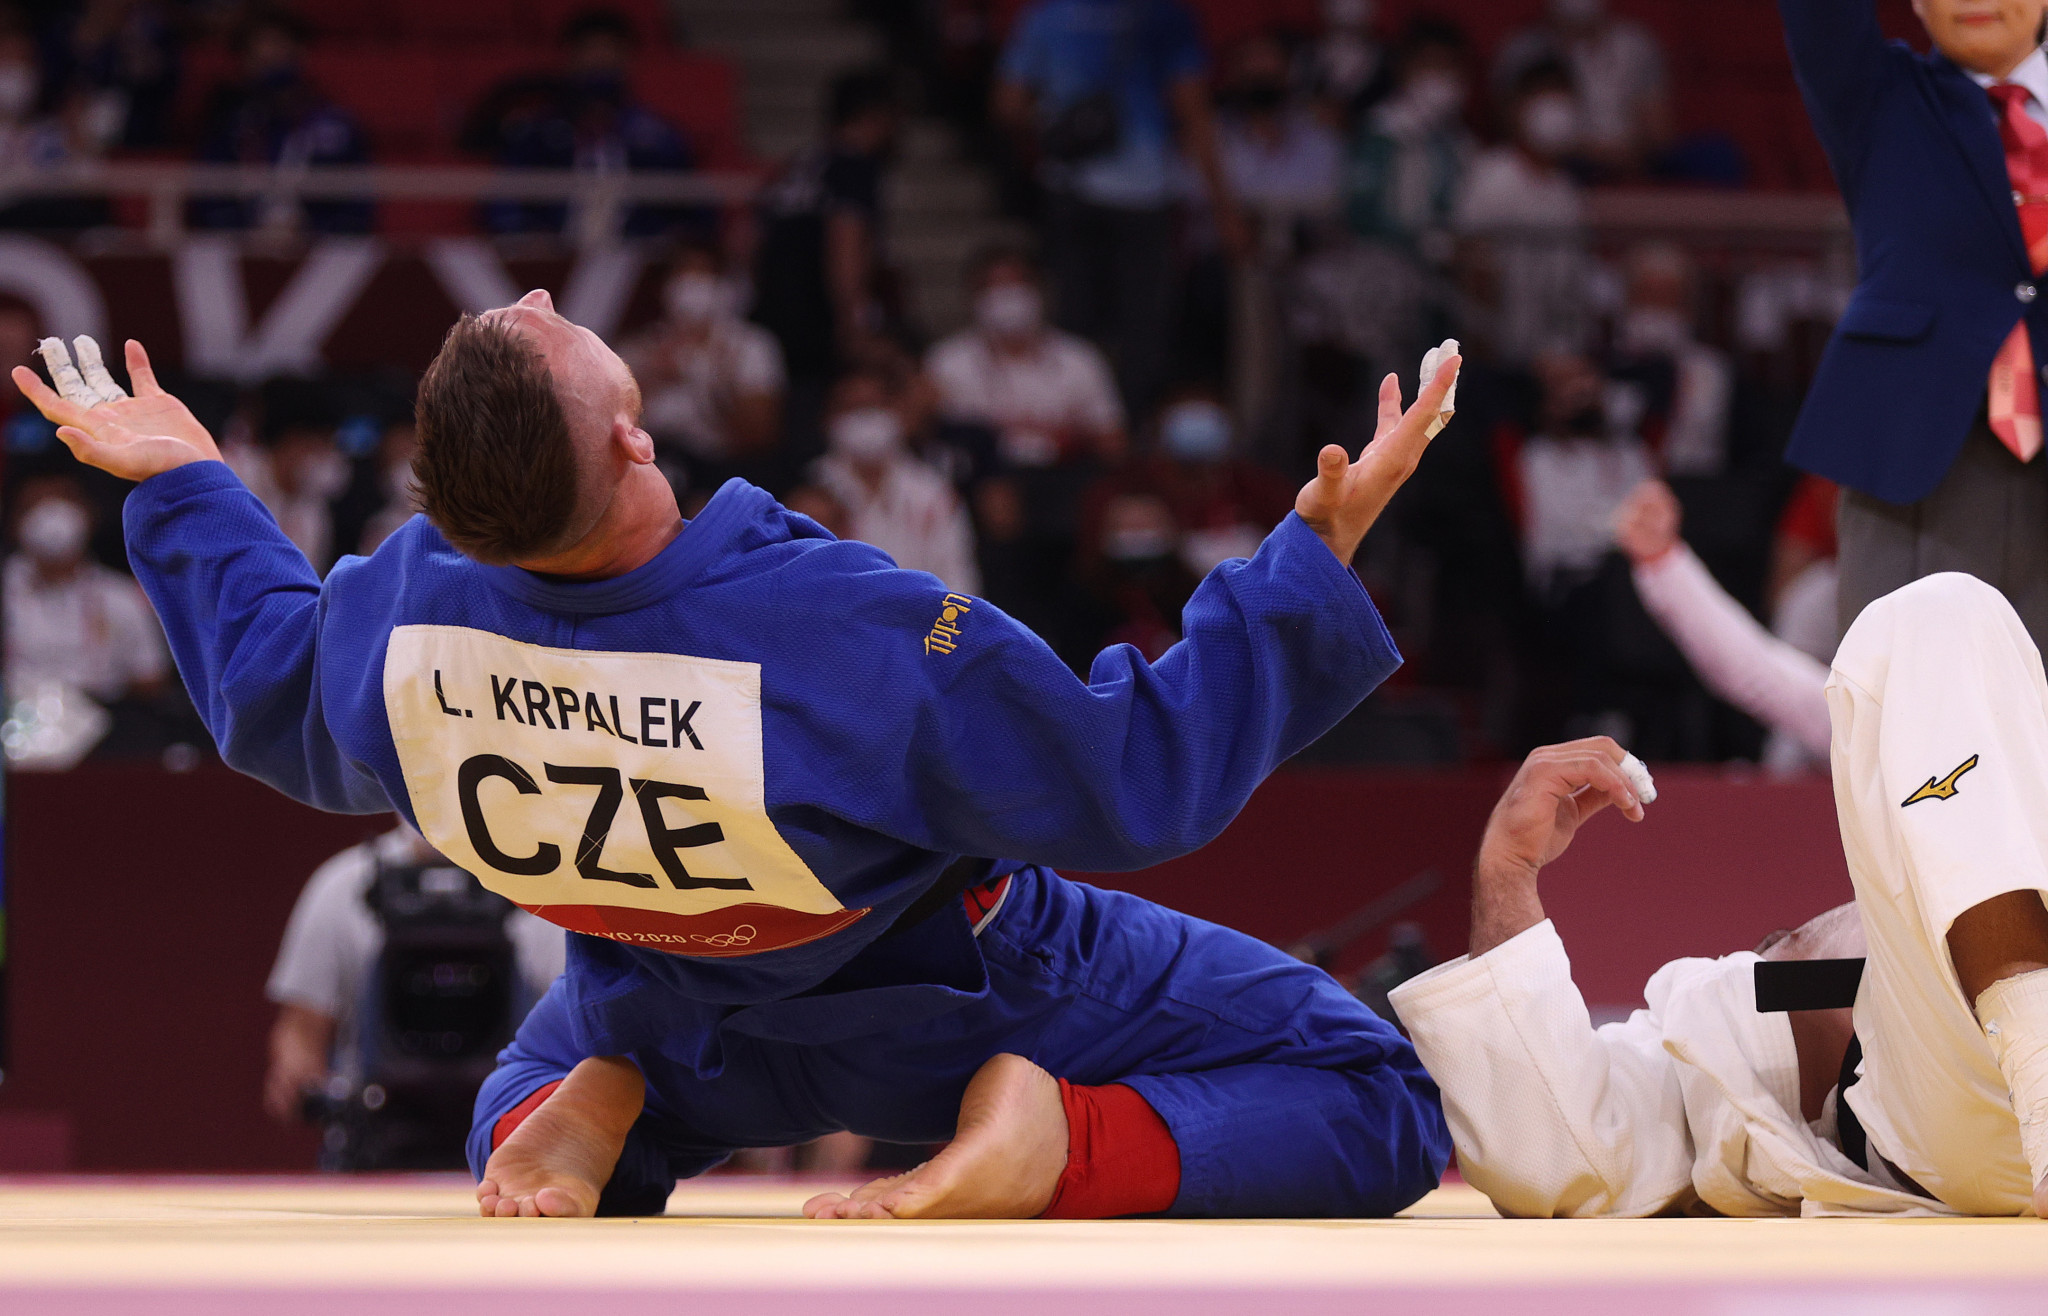 Lukáš Krpálek of the Czech Republic celebrates after becoming an Olympic judo champion at two different weights, winning the men's +100 kilograms category today in Tokyo ©Getty Images